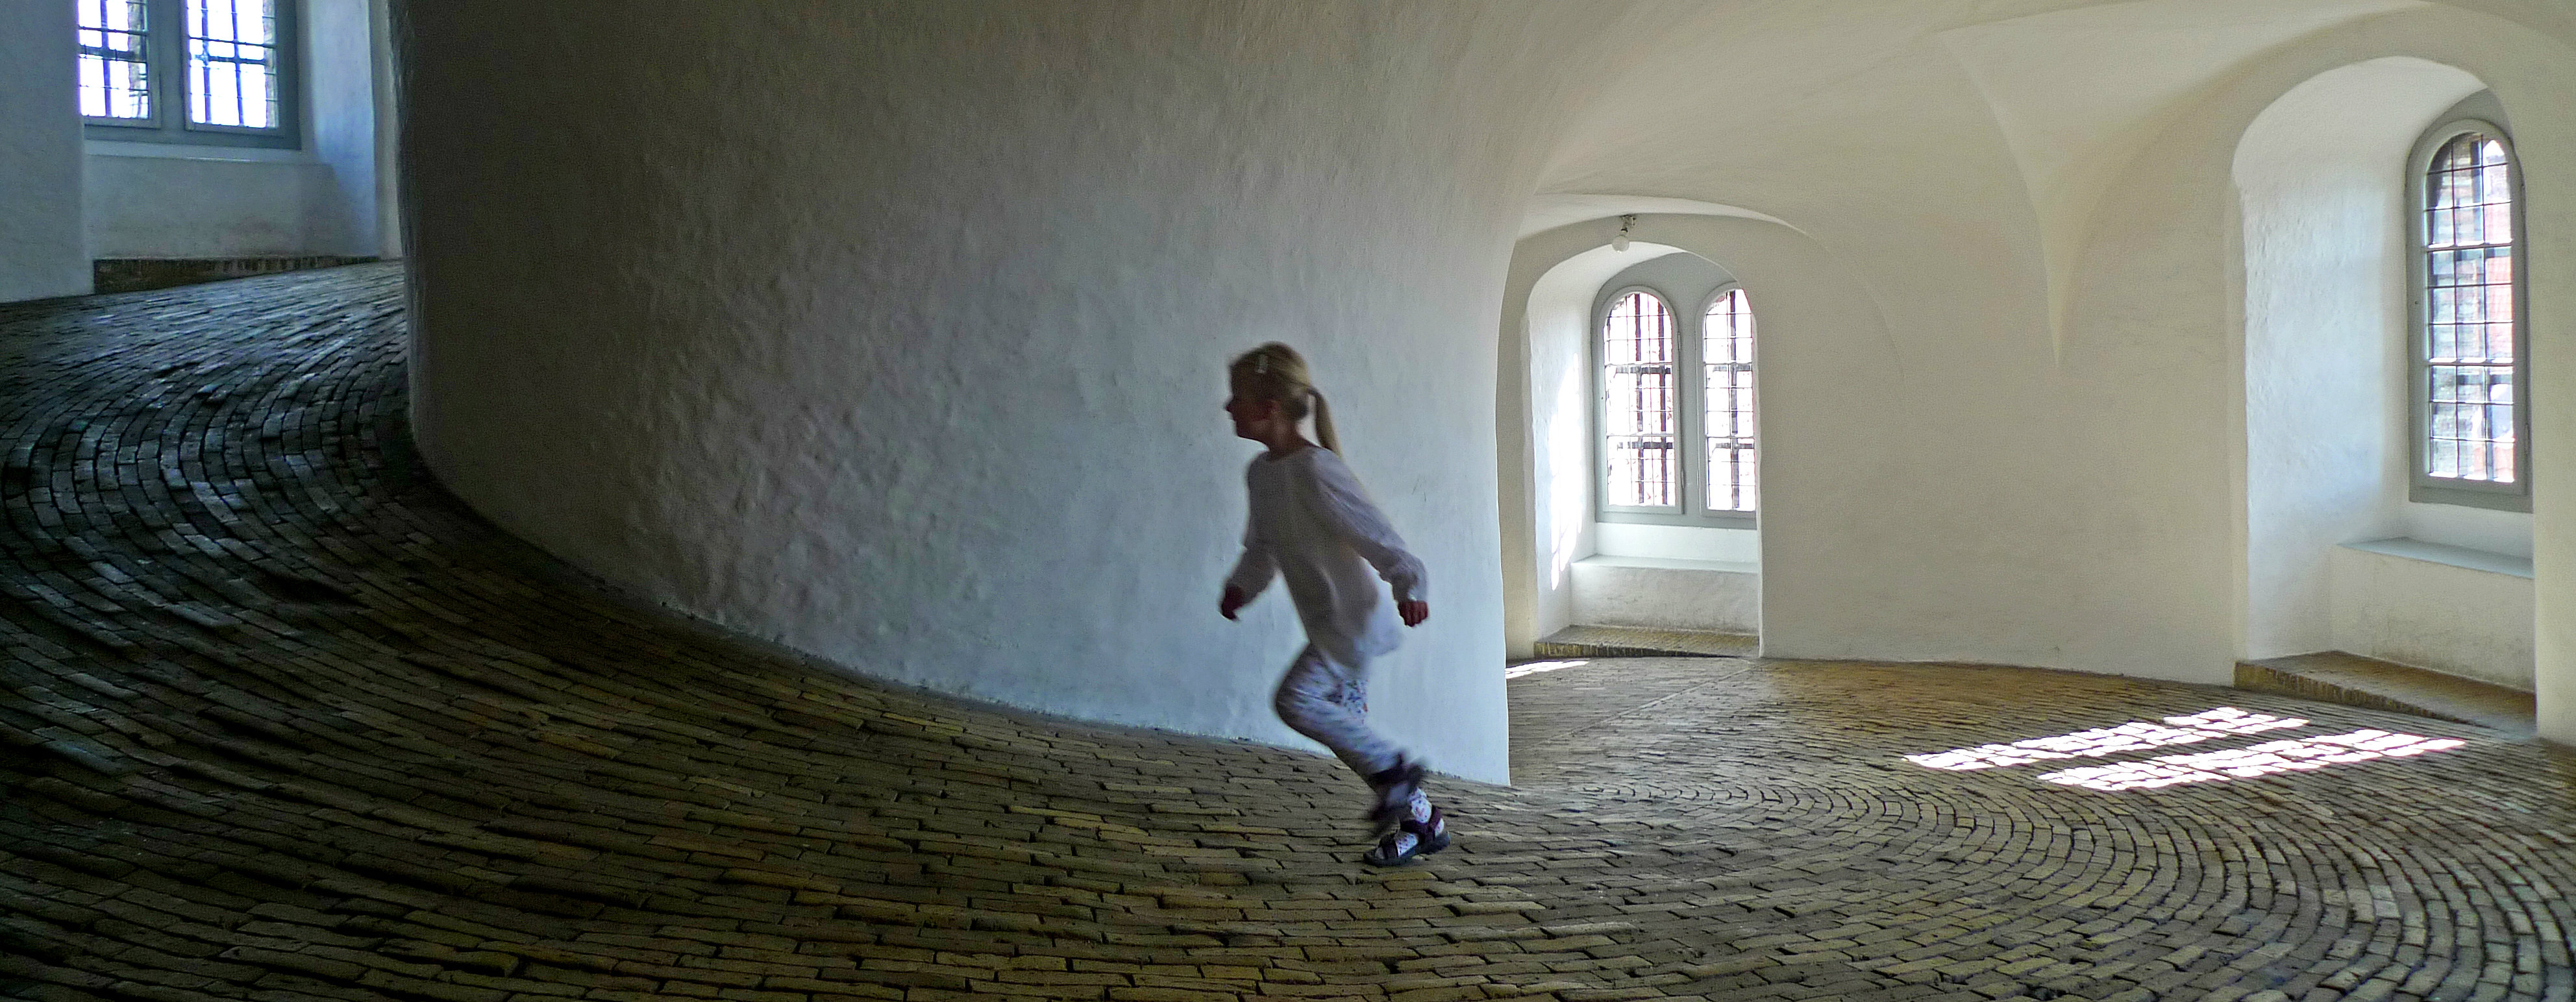 girl running - by an untrained eye [flickr] - cc-by-nc